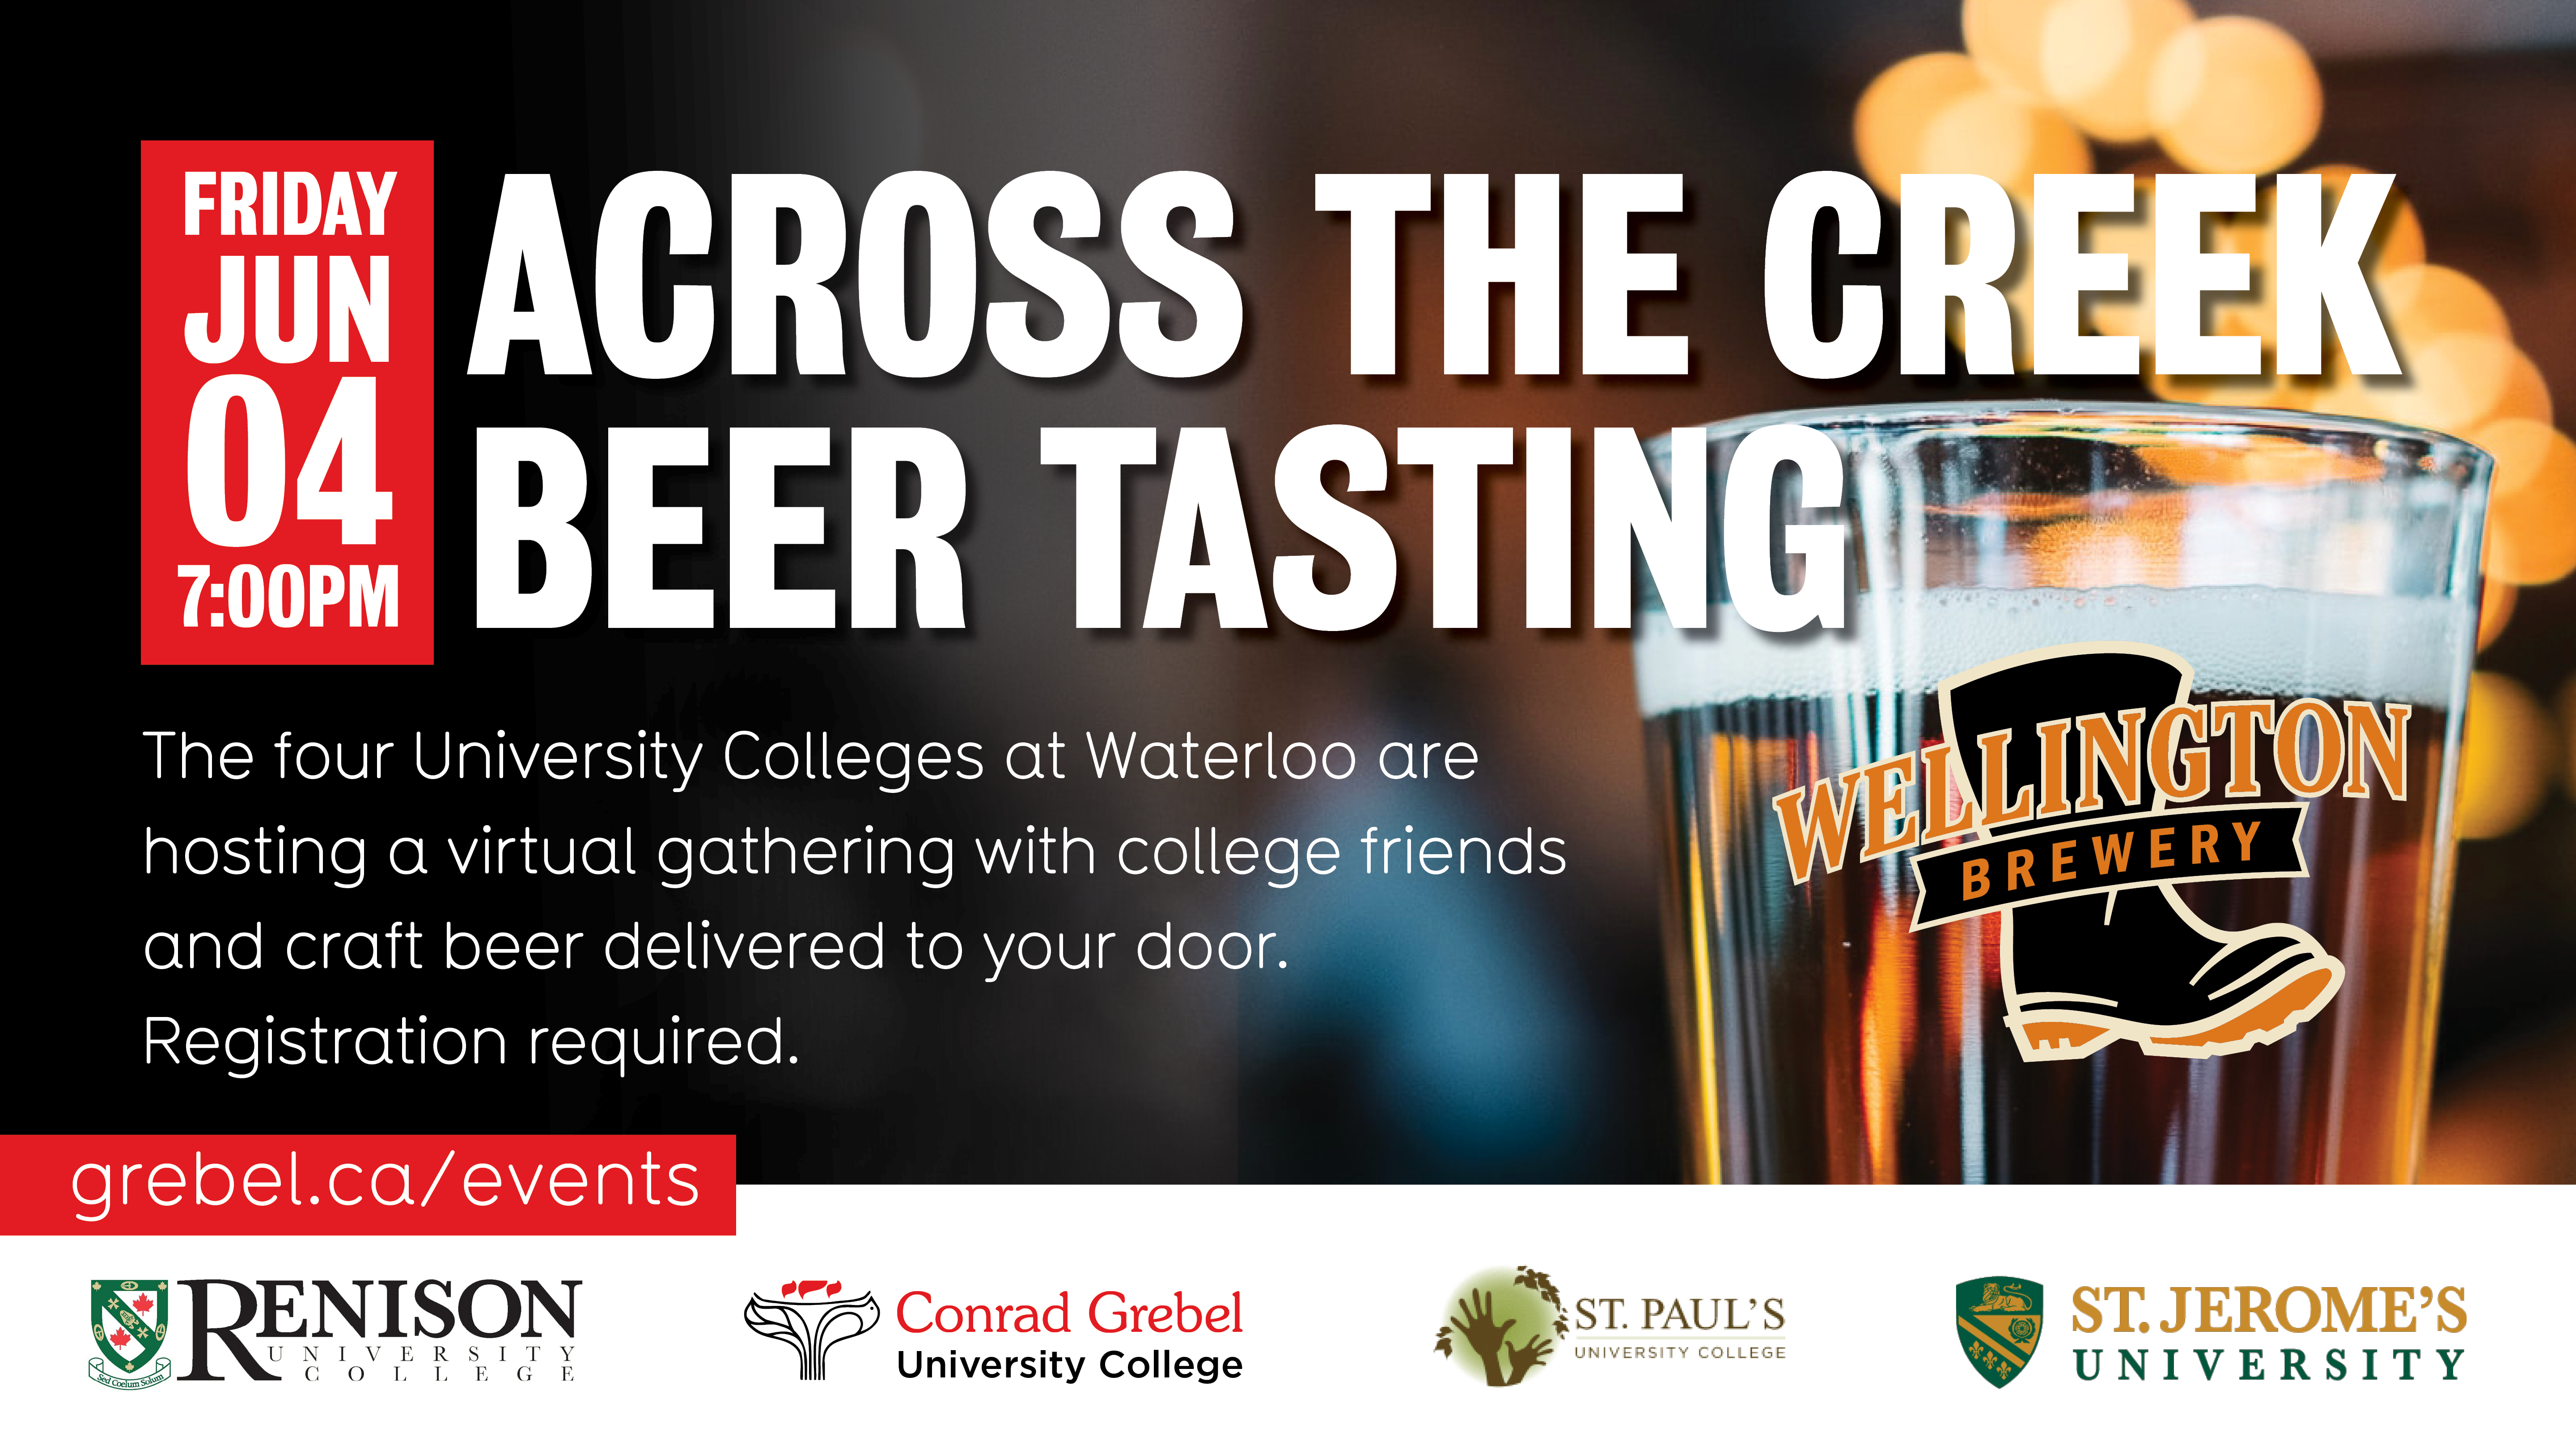 Across the Creek Beer Tasting, logos from Renison, Conrad Grebel, St. Jerome's and St. Paul's Colleges